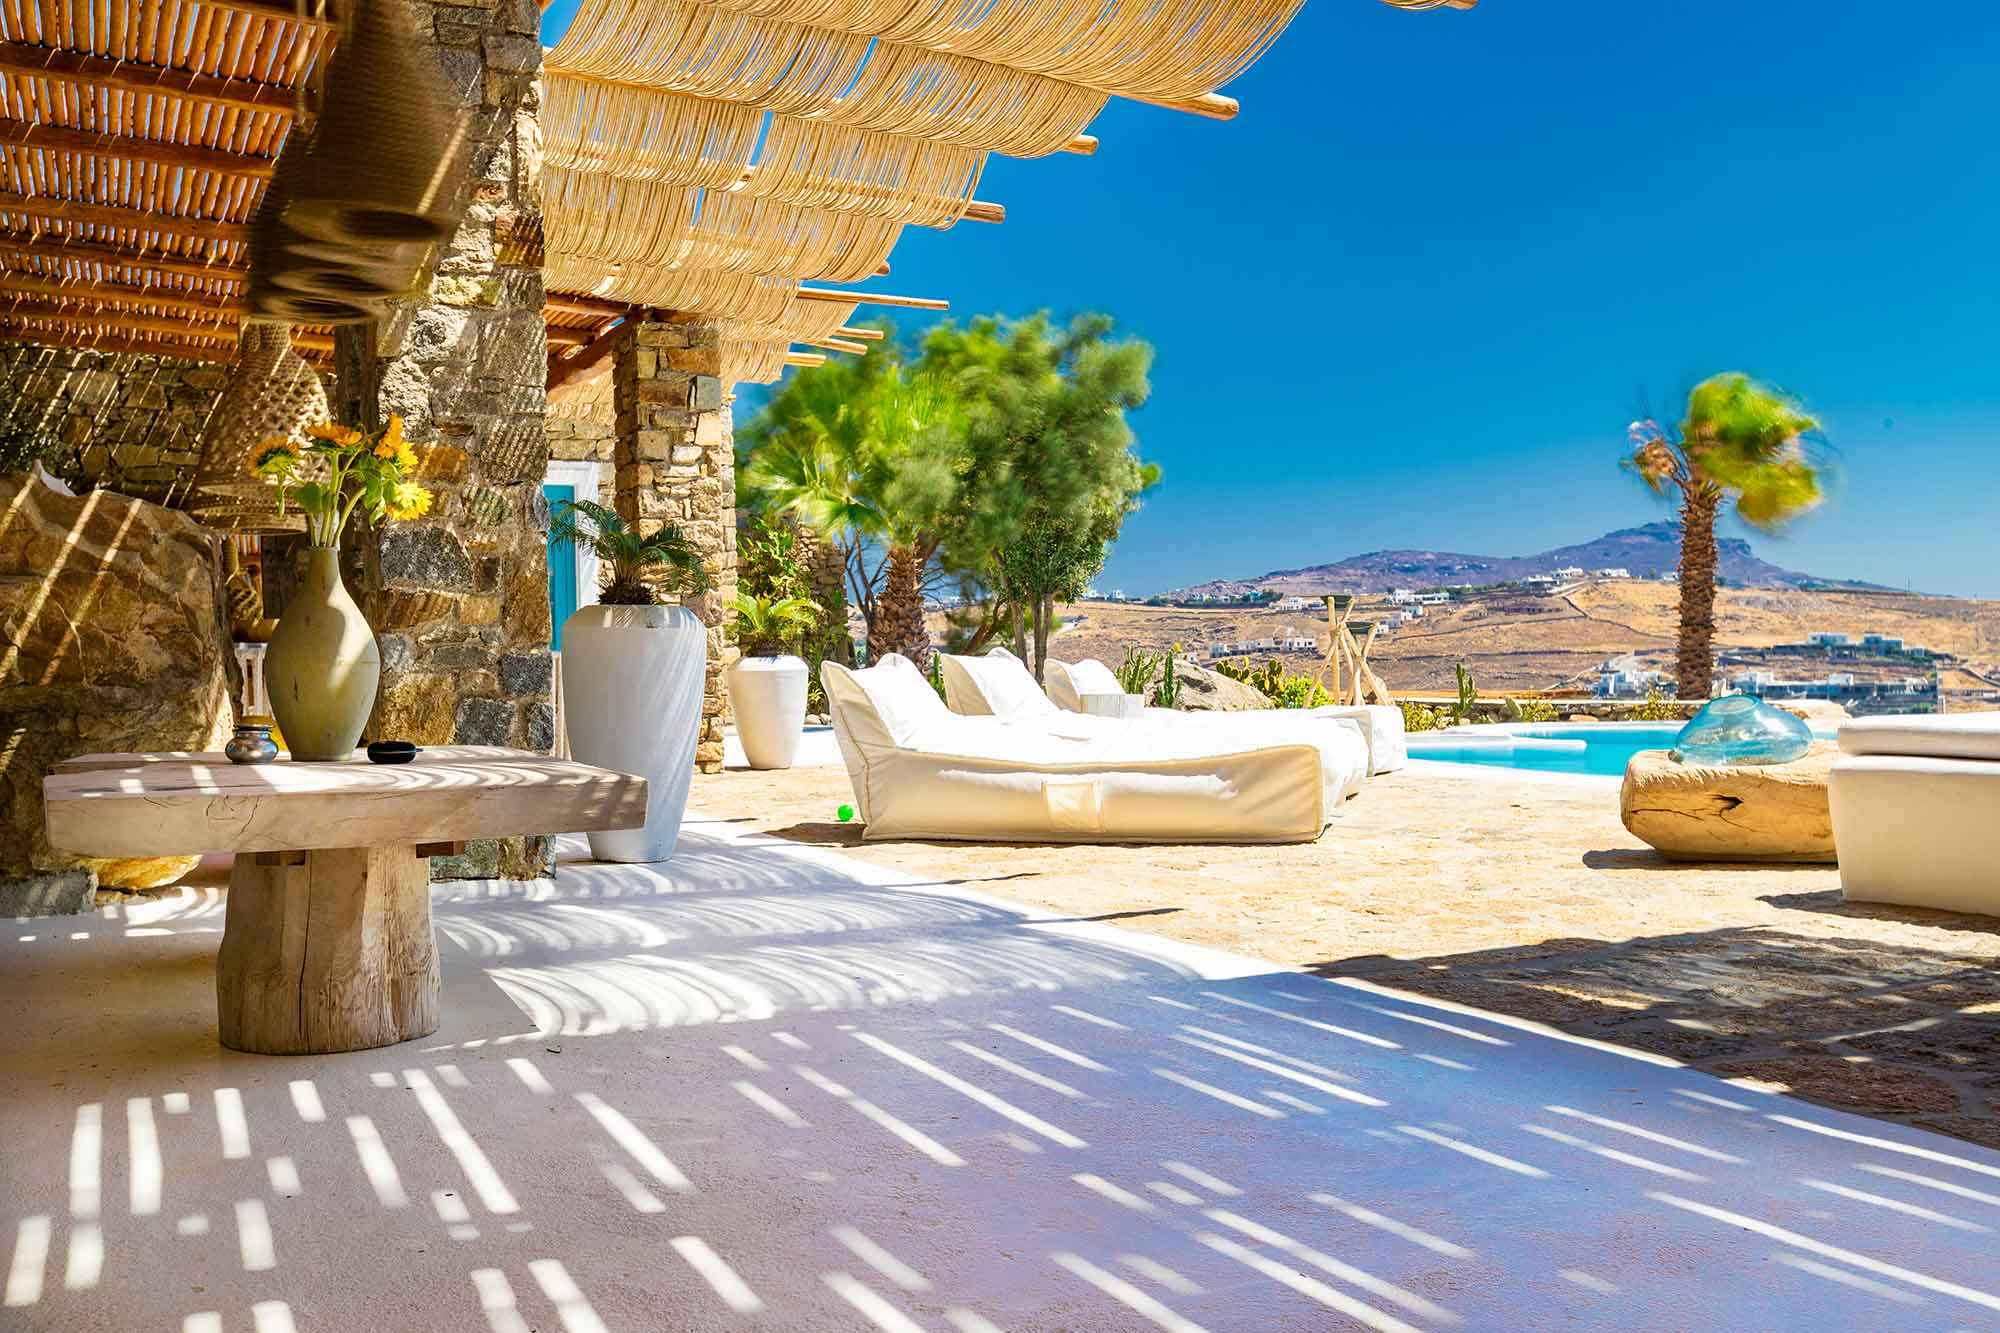 RENT A LUXURIOUS VILLA BY THE SEA IN MYKONOS - VILLA KARKOS - landscape